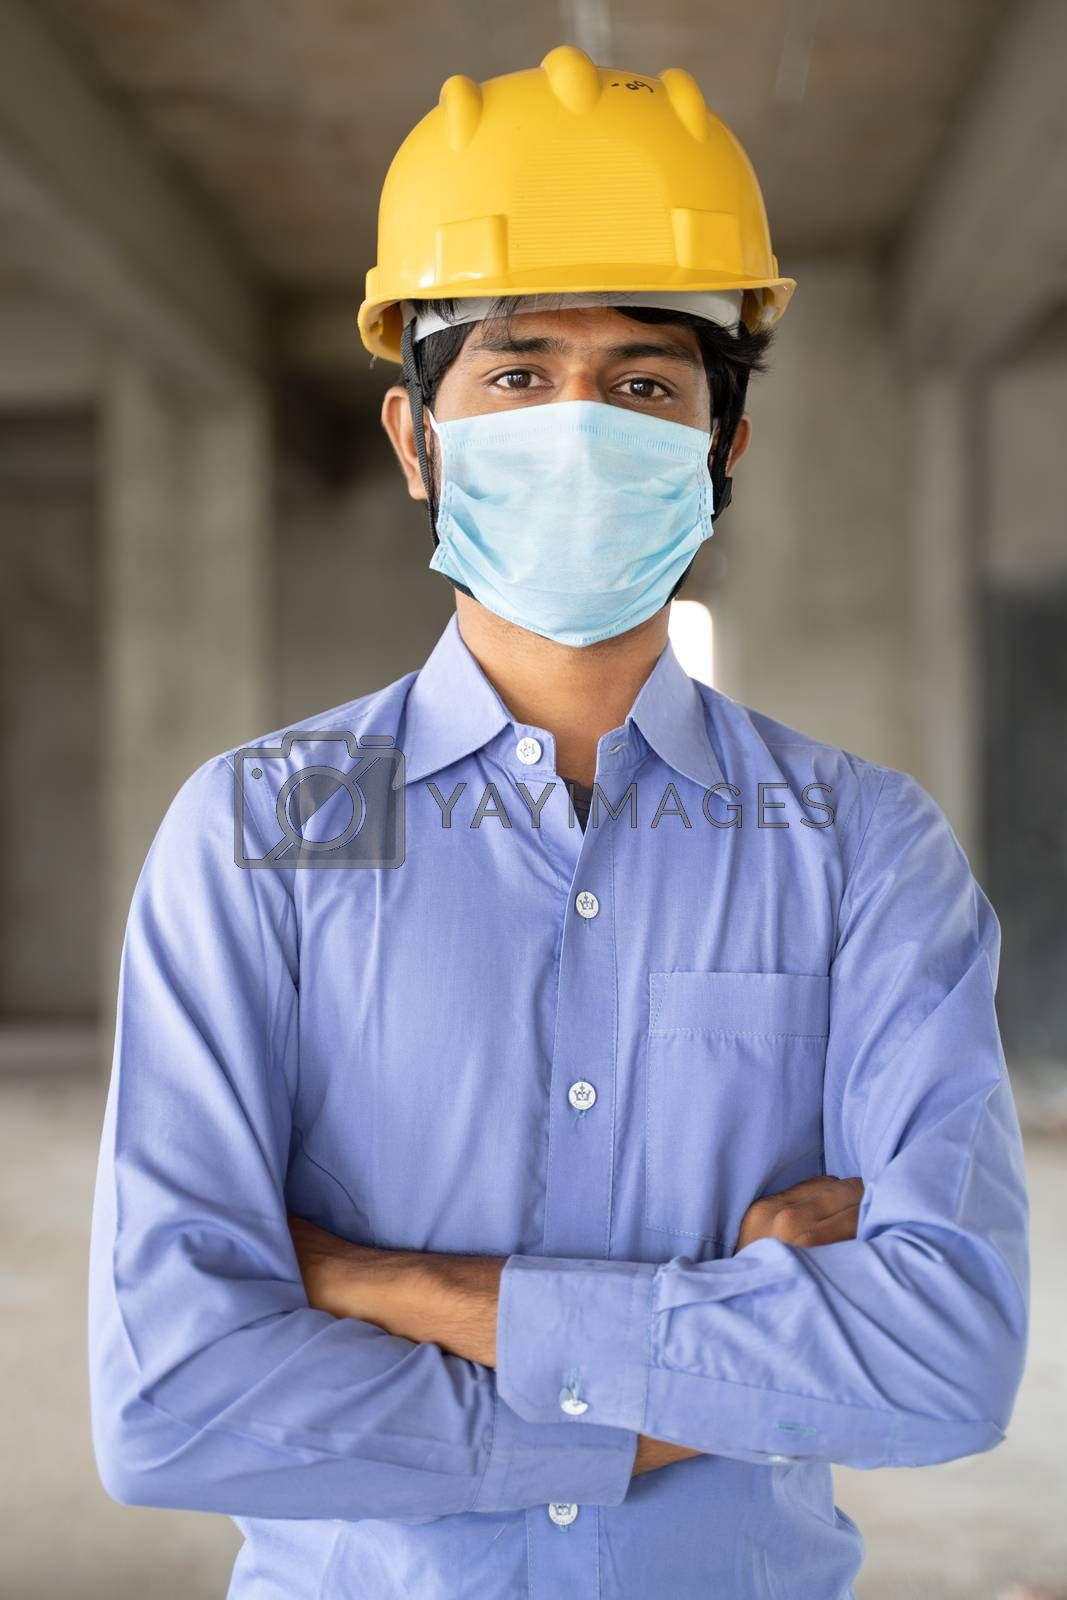 Concept of back to work, opening of construction sites - portrait of confident male construction worker in a construction helmet with medical mask due to coronavirus or covid-19 pandemic